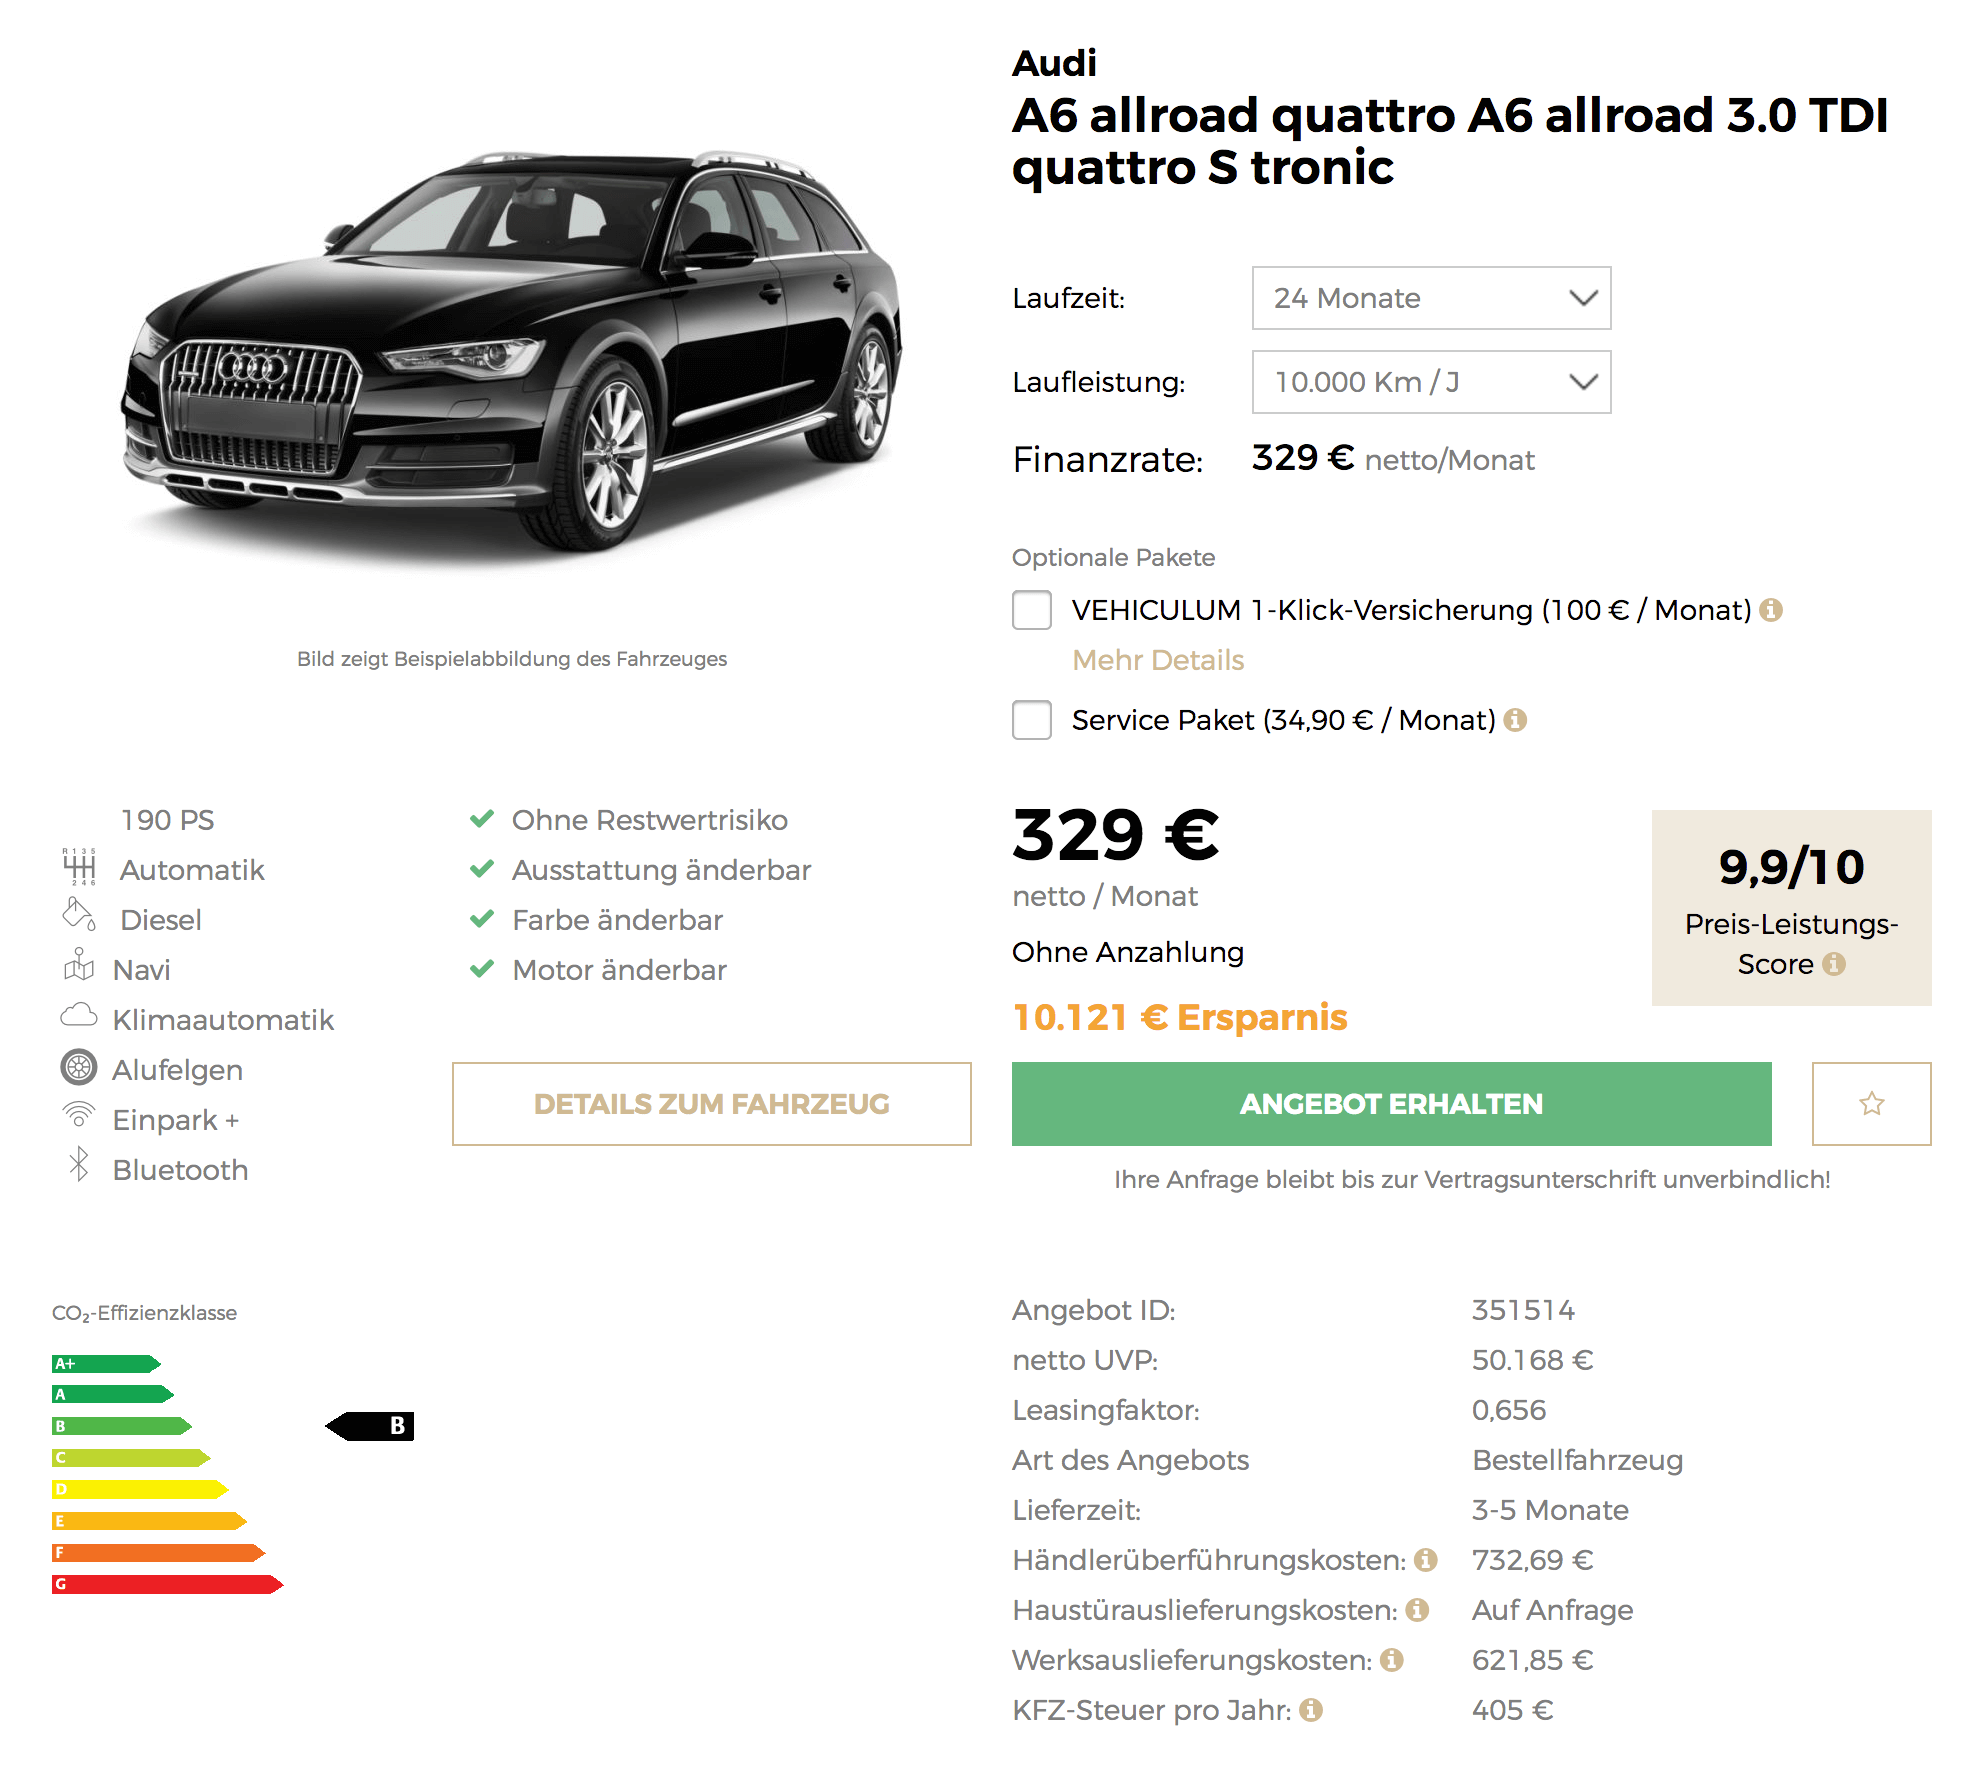 hot audi a6 allroad quattro leasing f r 329 euro im monat. Black Bedroom Furniture Sets. Home Design Ideas